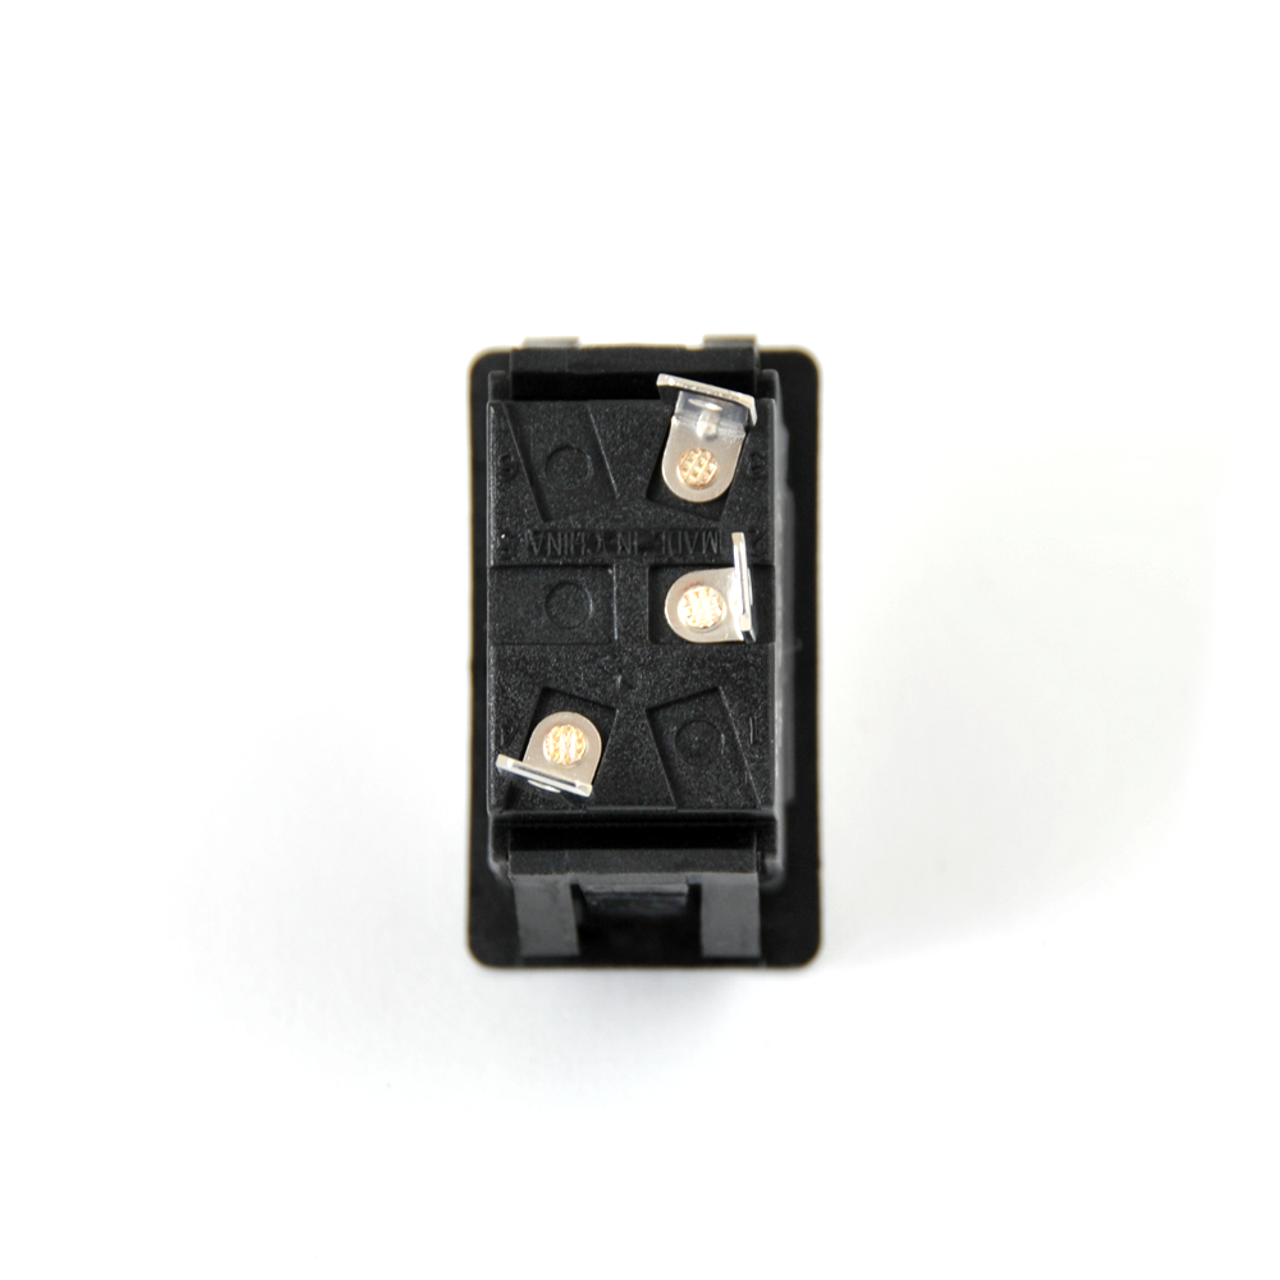 Late 80 Series Toyota Aux Light Switch (ALS-1)